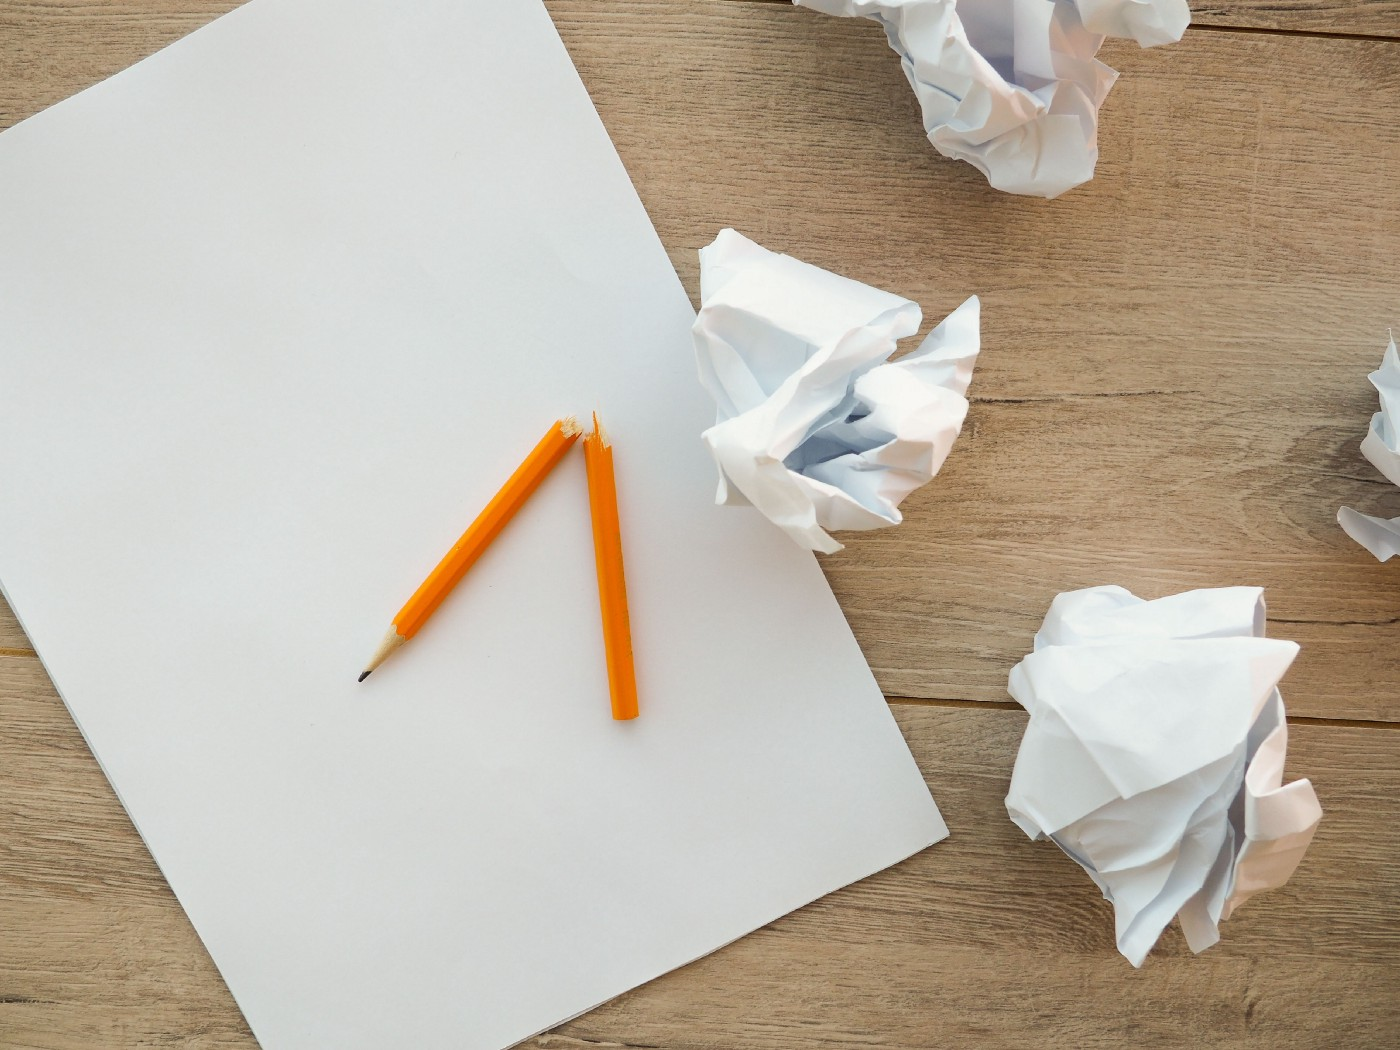 the image shows a plain piece of paper alongside a broken pencil and 4 balls of scrumpled-up paper